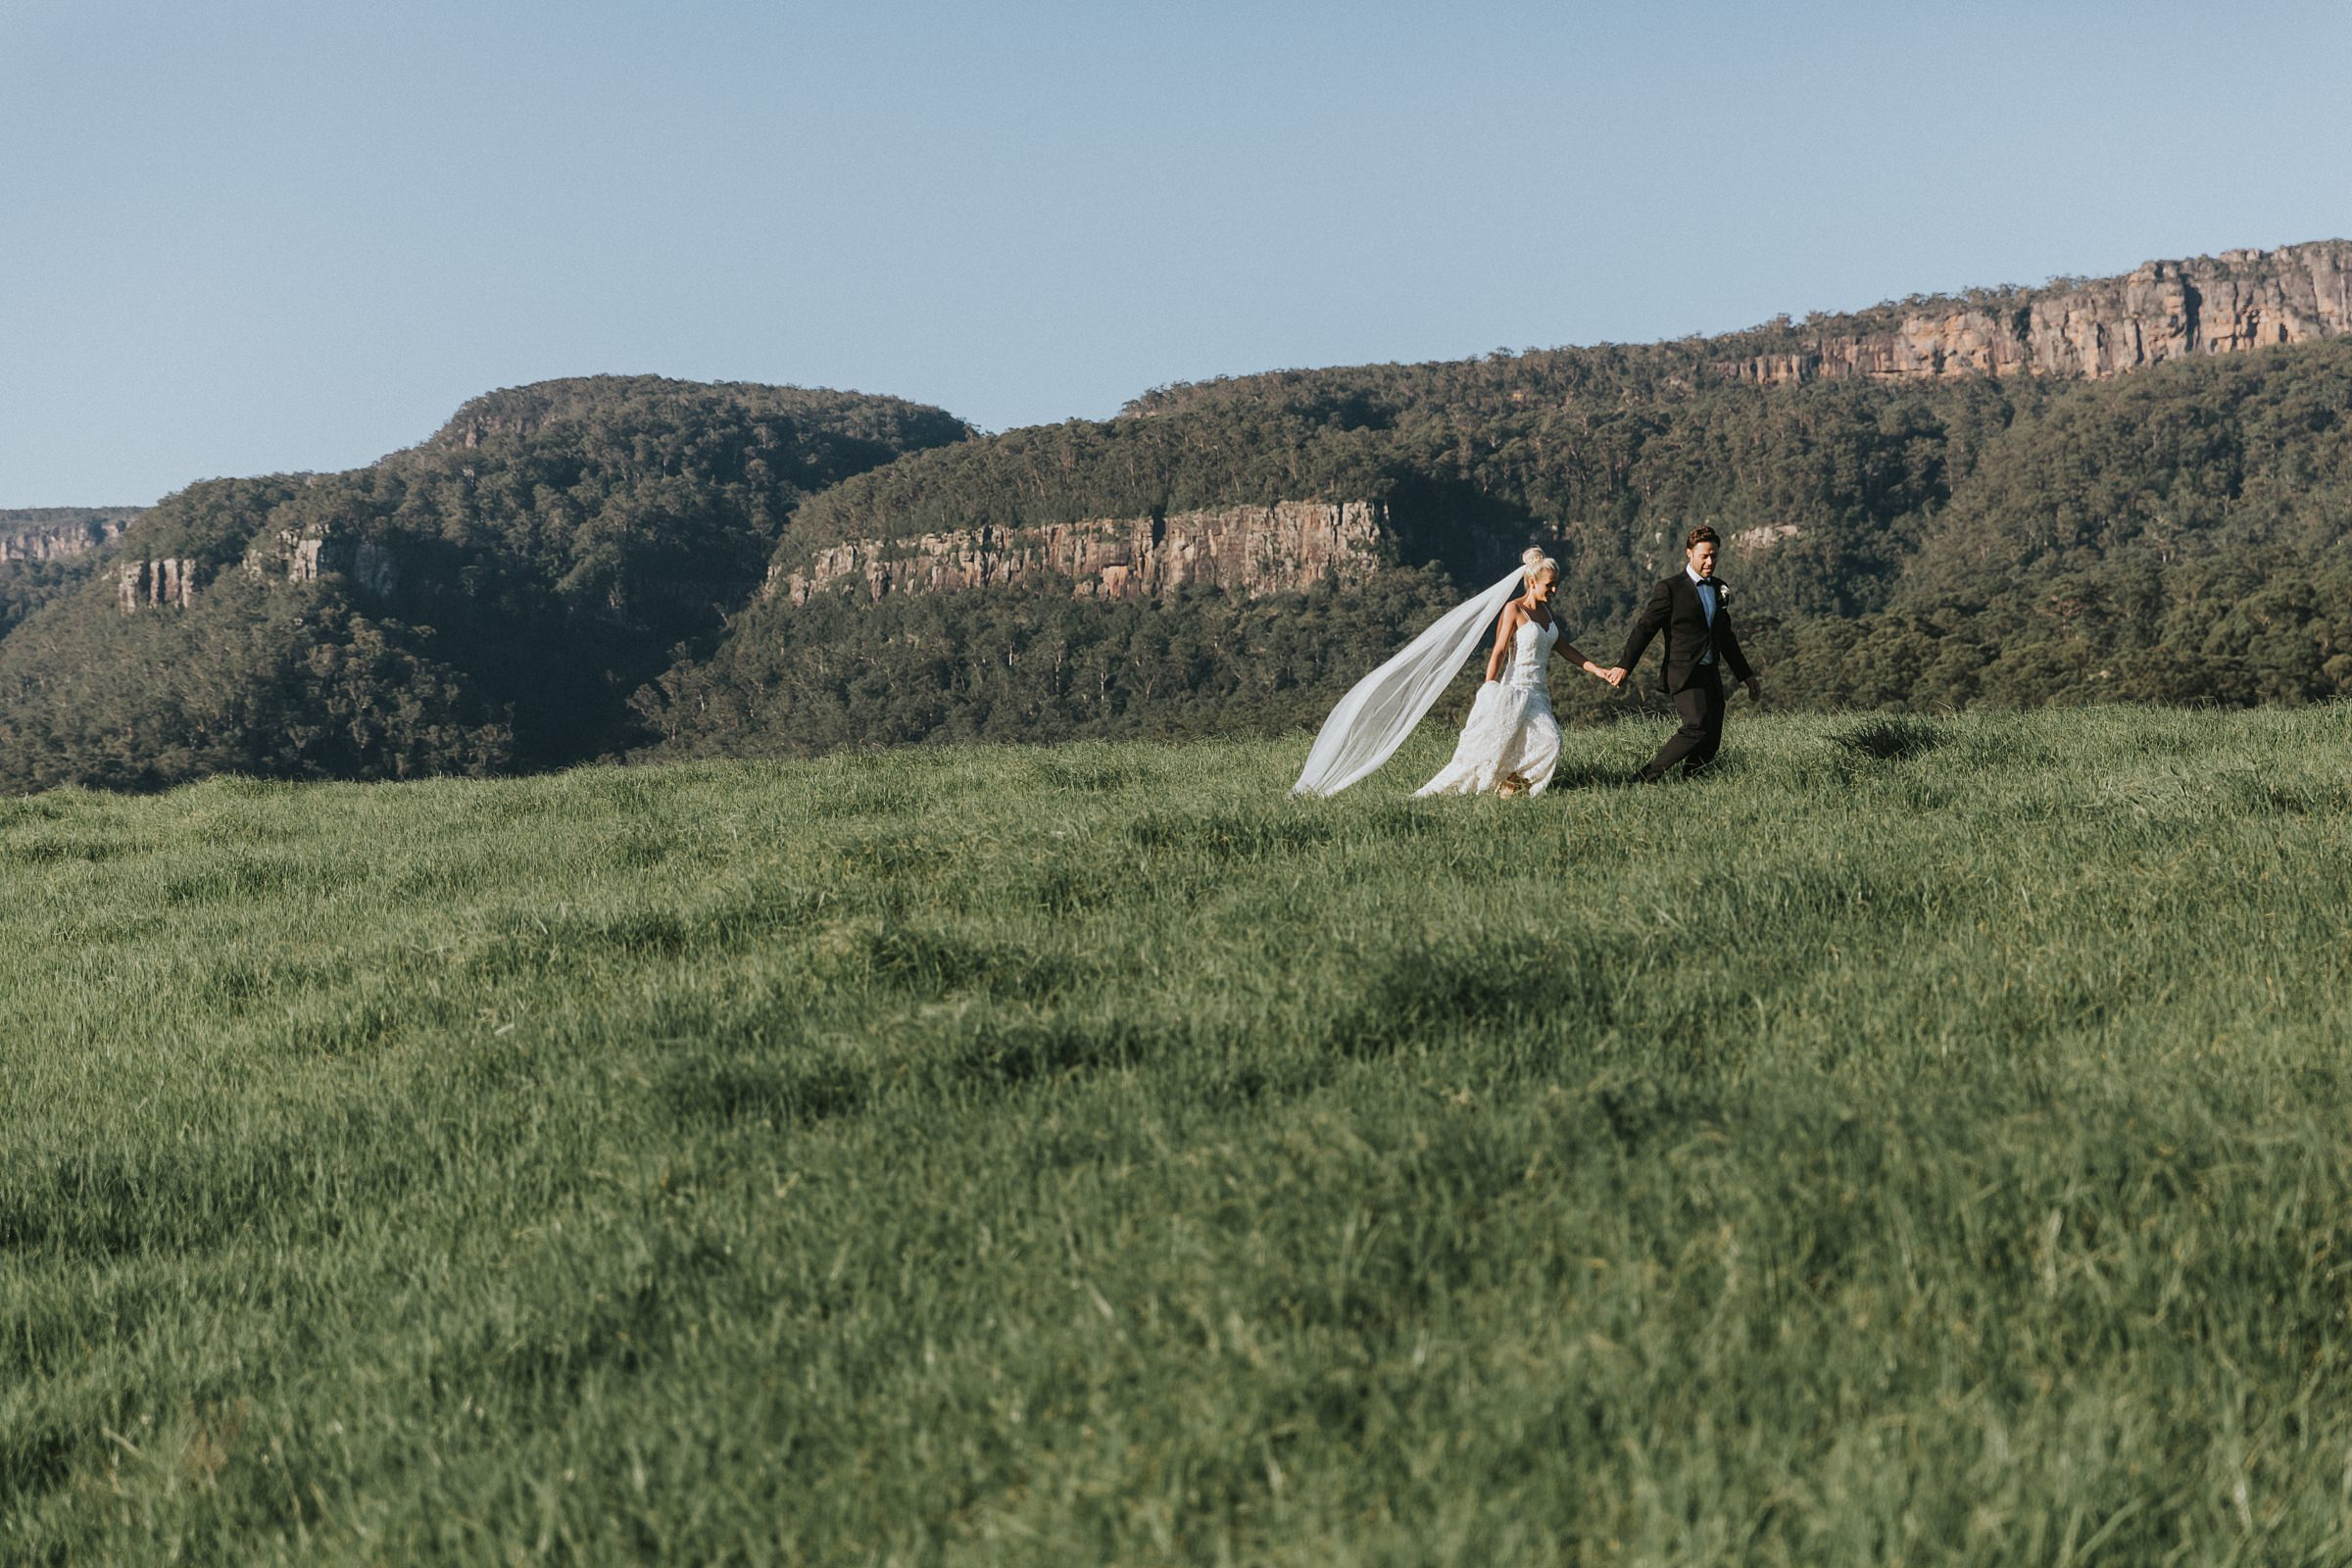 dramatic landscape photography with the bride and groom on wedding day